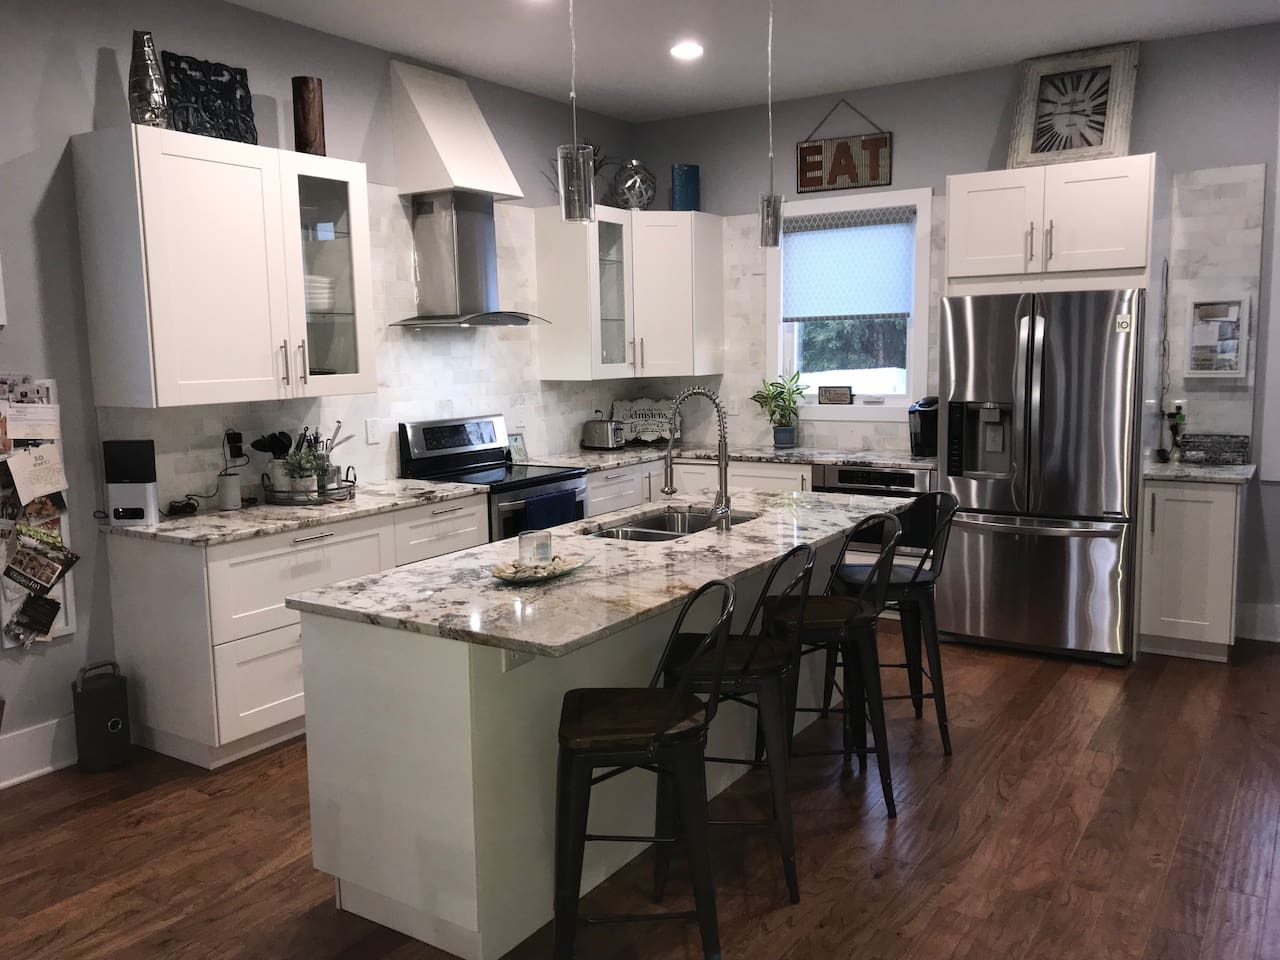 Large, open kitchen with everything you need!